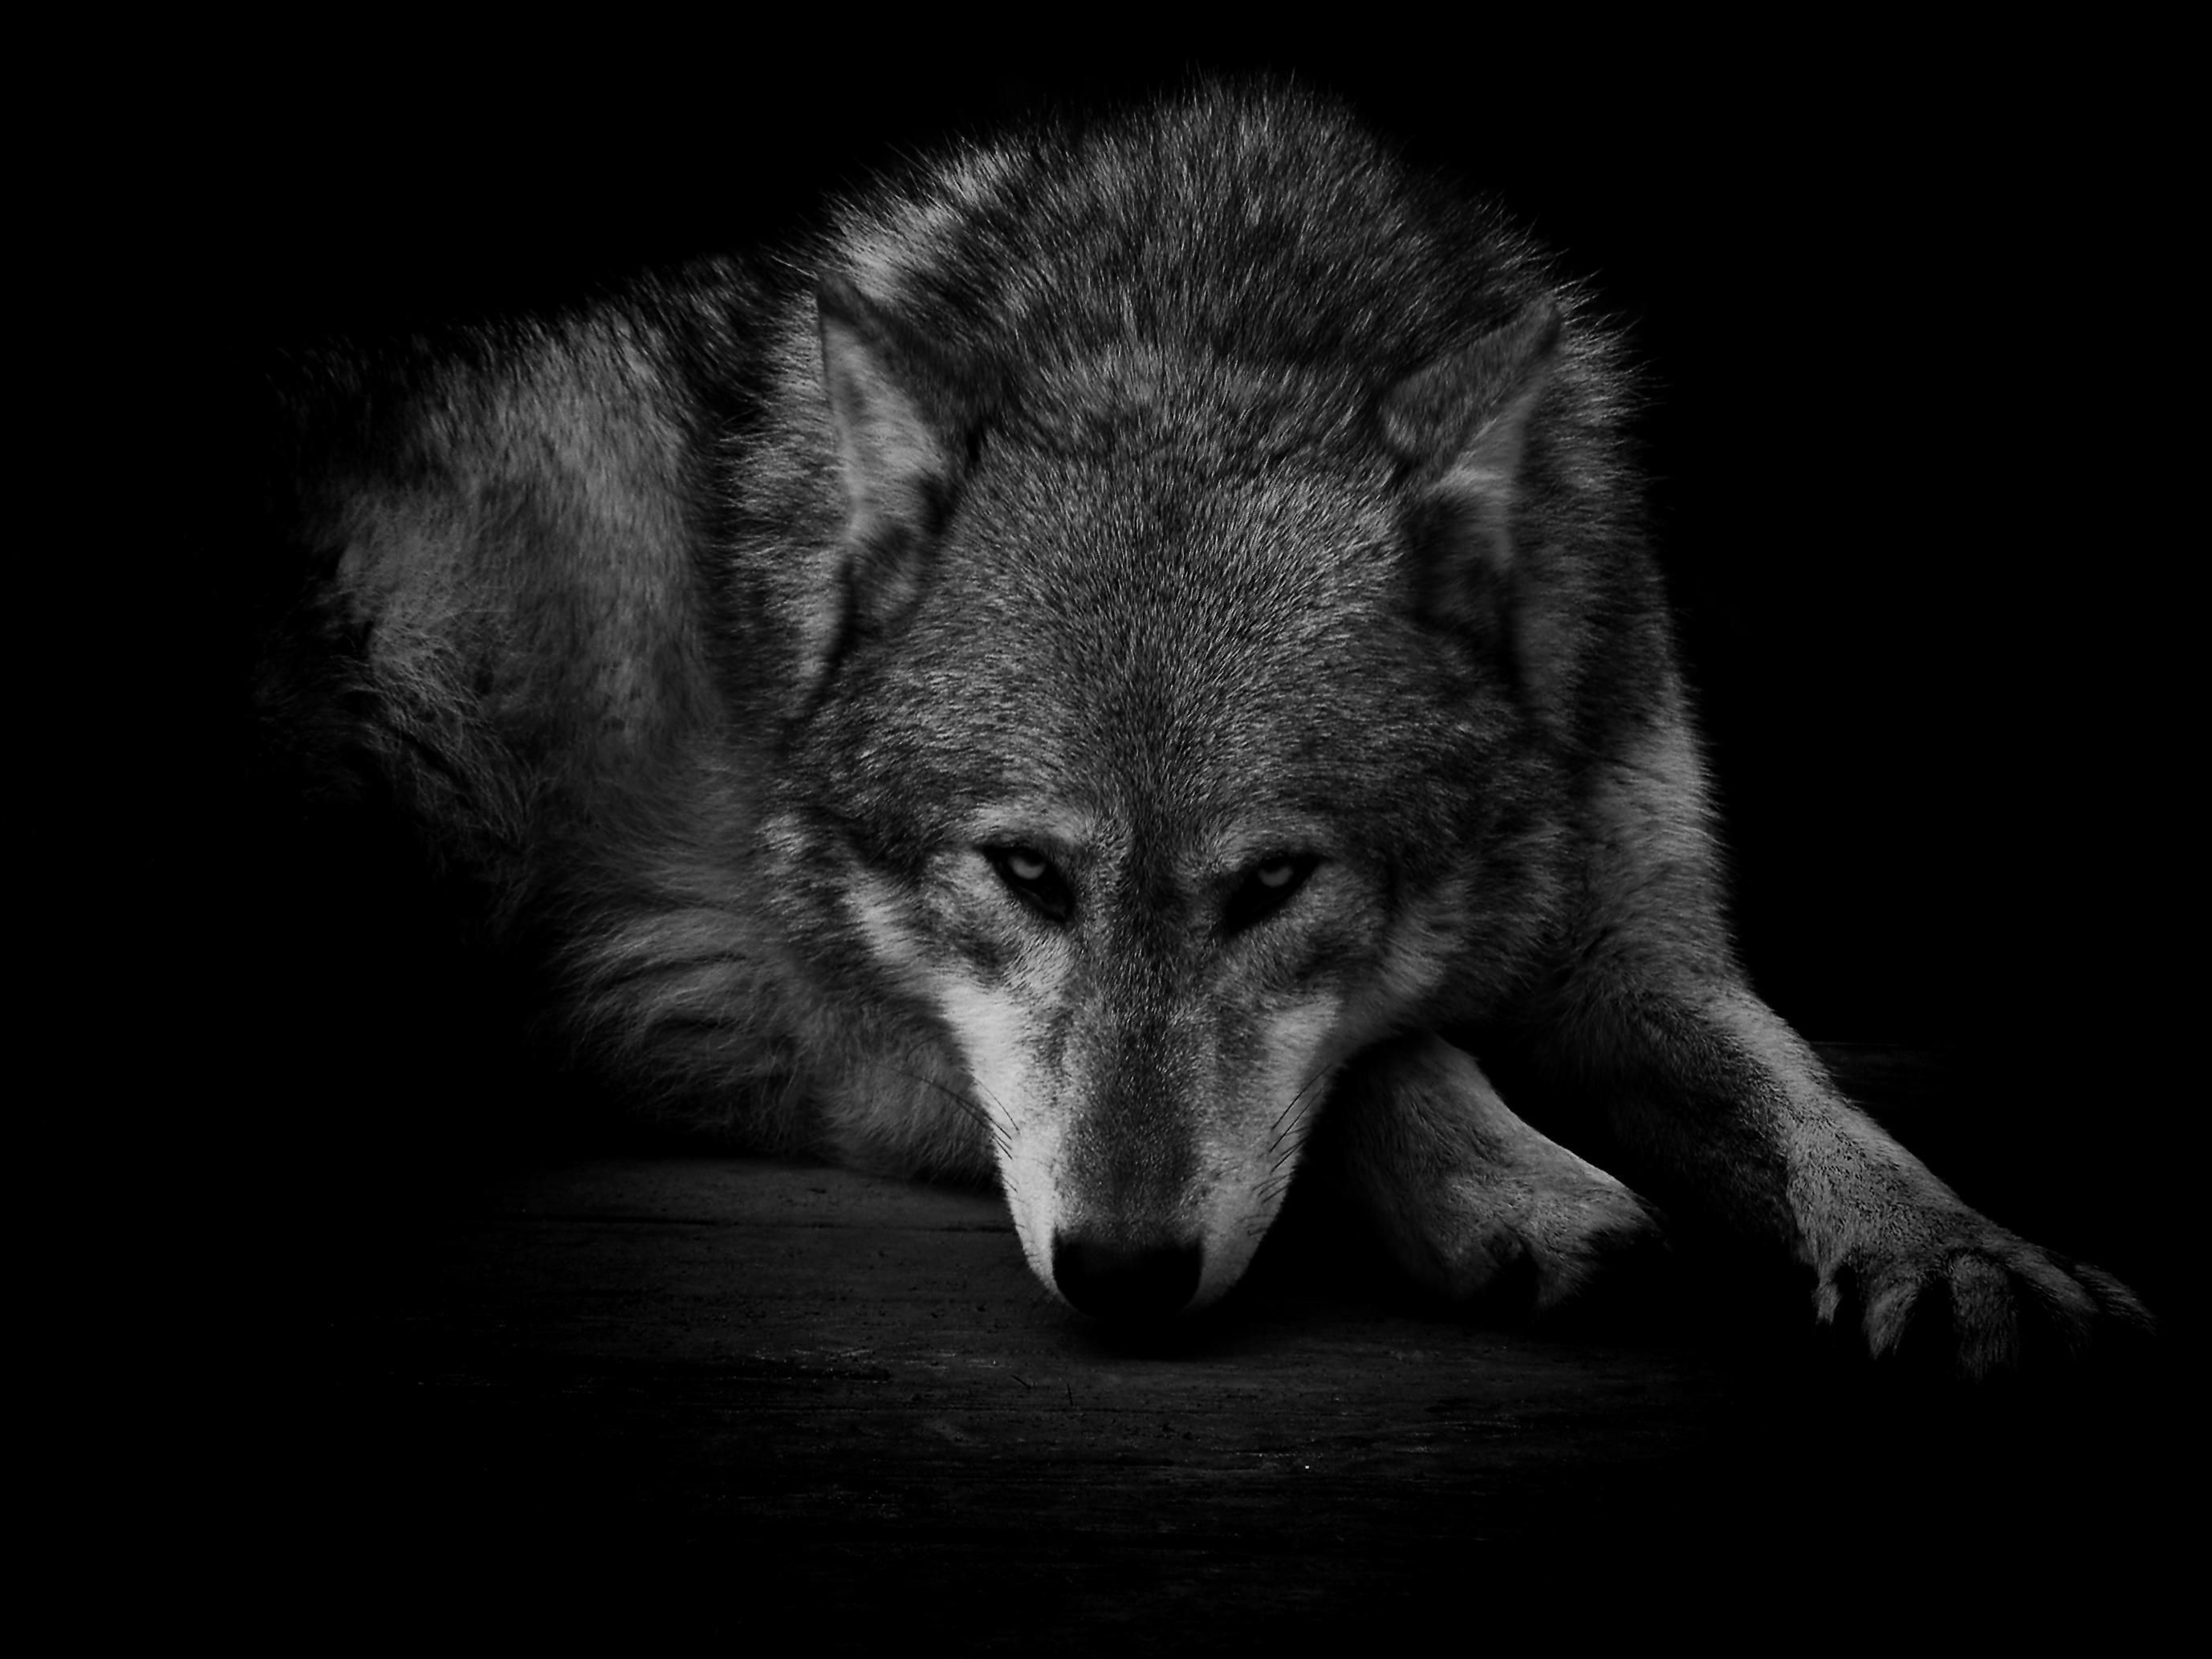 Great Wallpaper Abstract Wolf - 497898-large-black-wolf-wallpapers-2756x2067  HD_145149 .jpg